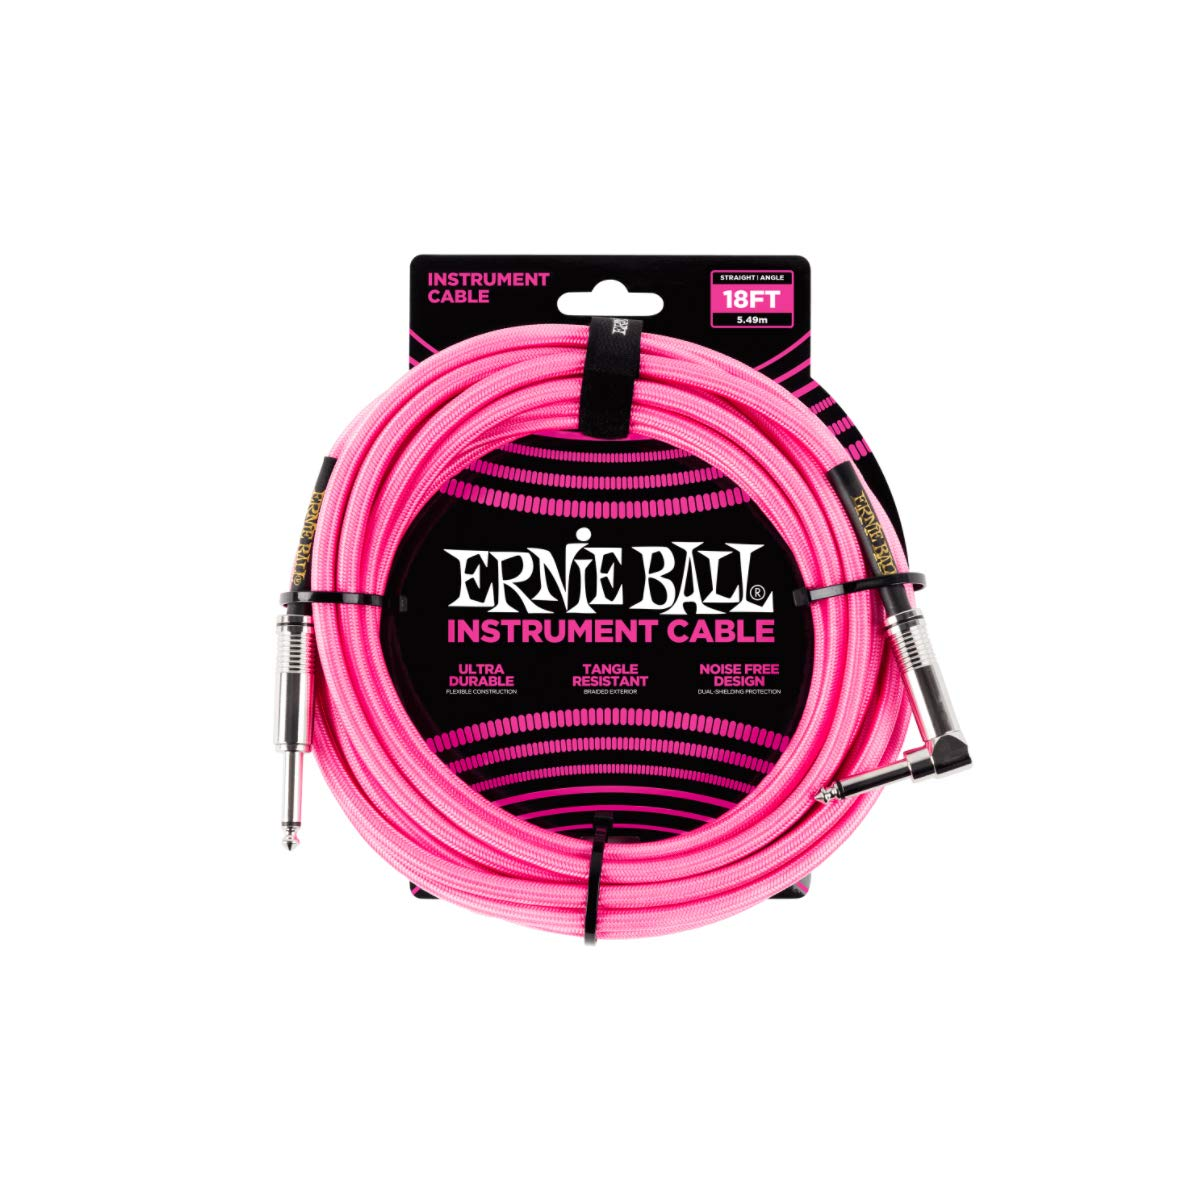 Ernie Ball 18' Braided Straight Angle Inst Cable Neon Pink